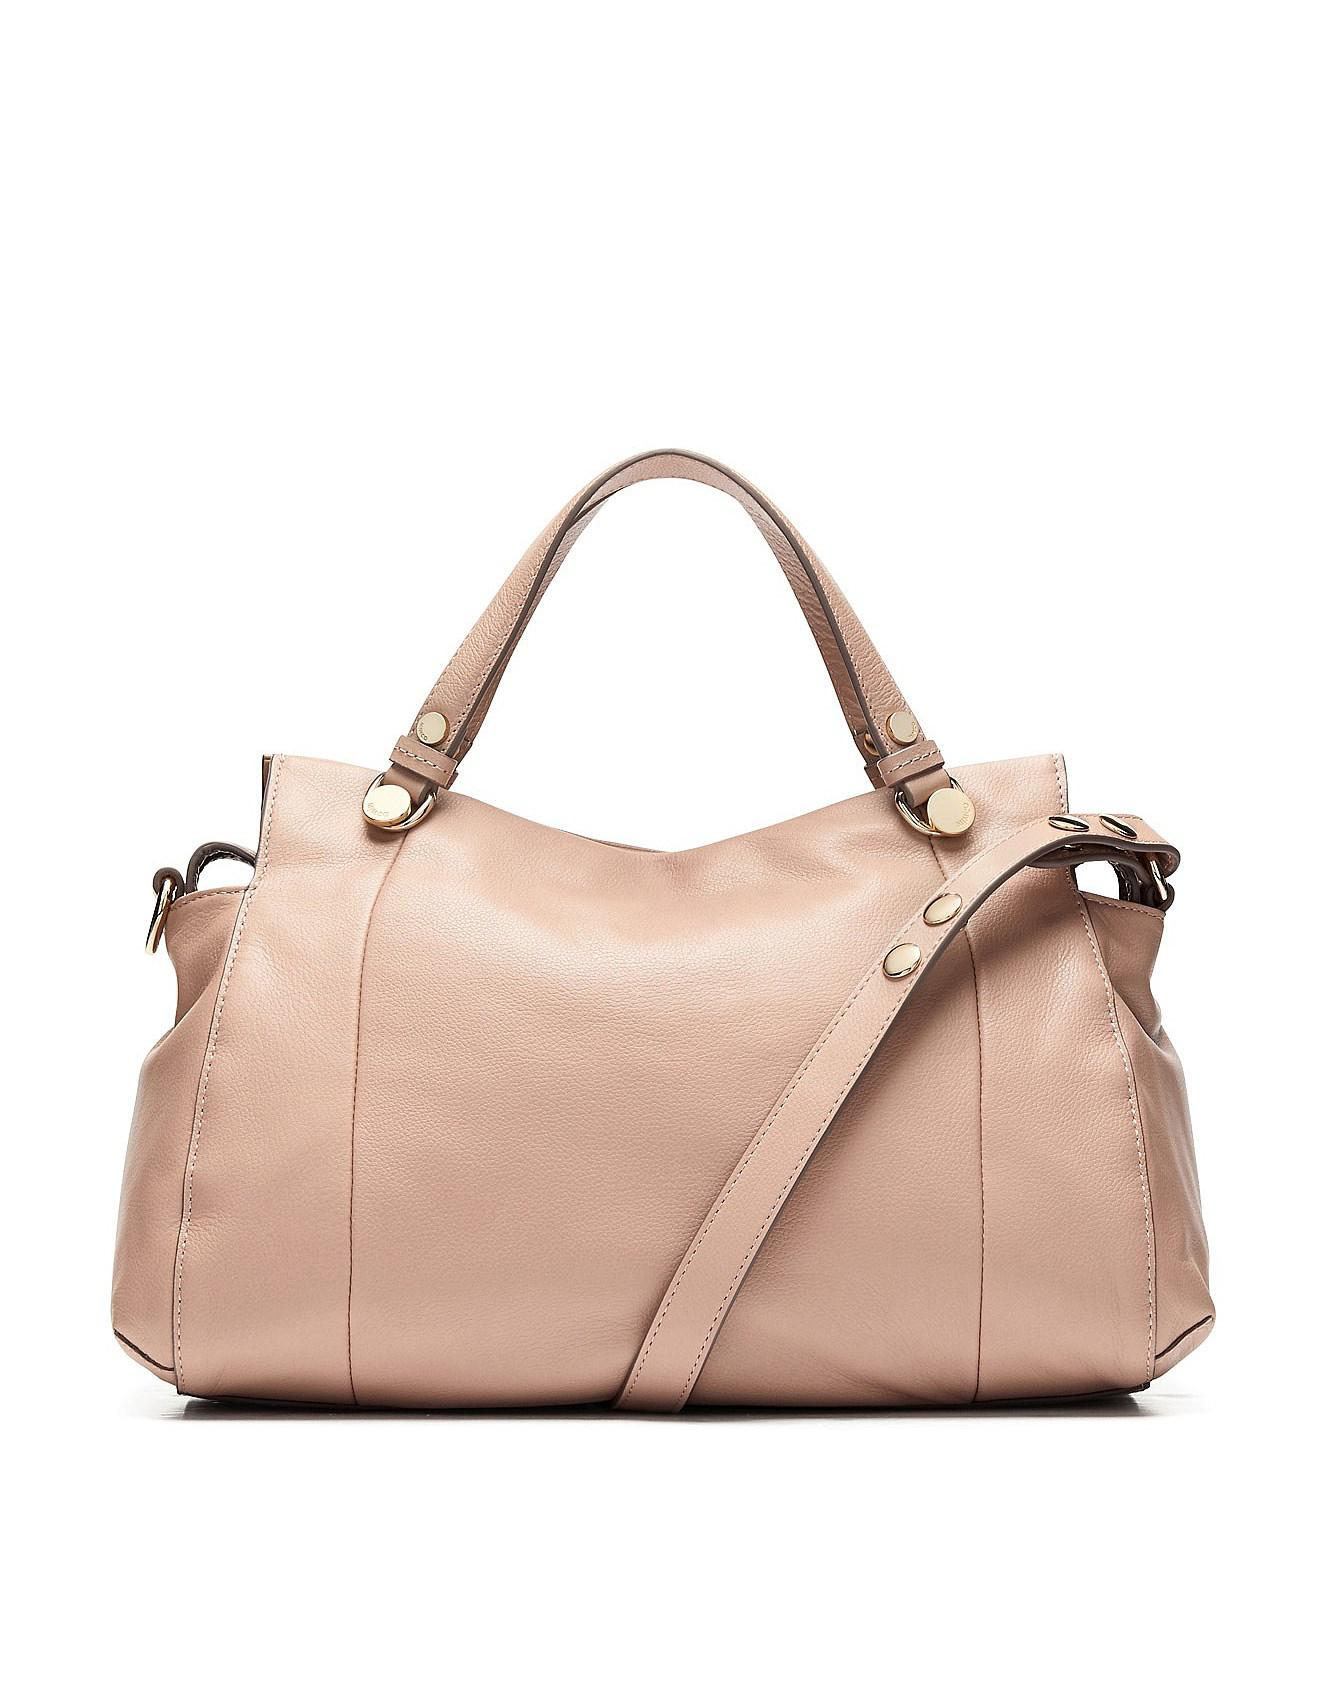 09d29129bfe7 Mimco Waver Day Bag - Lyst